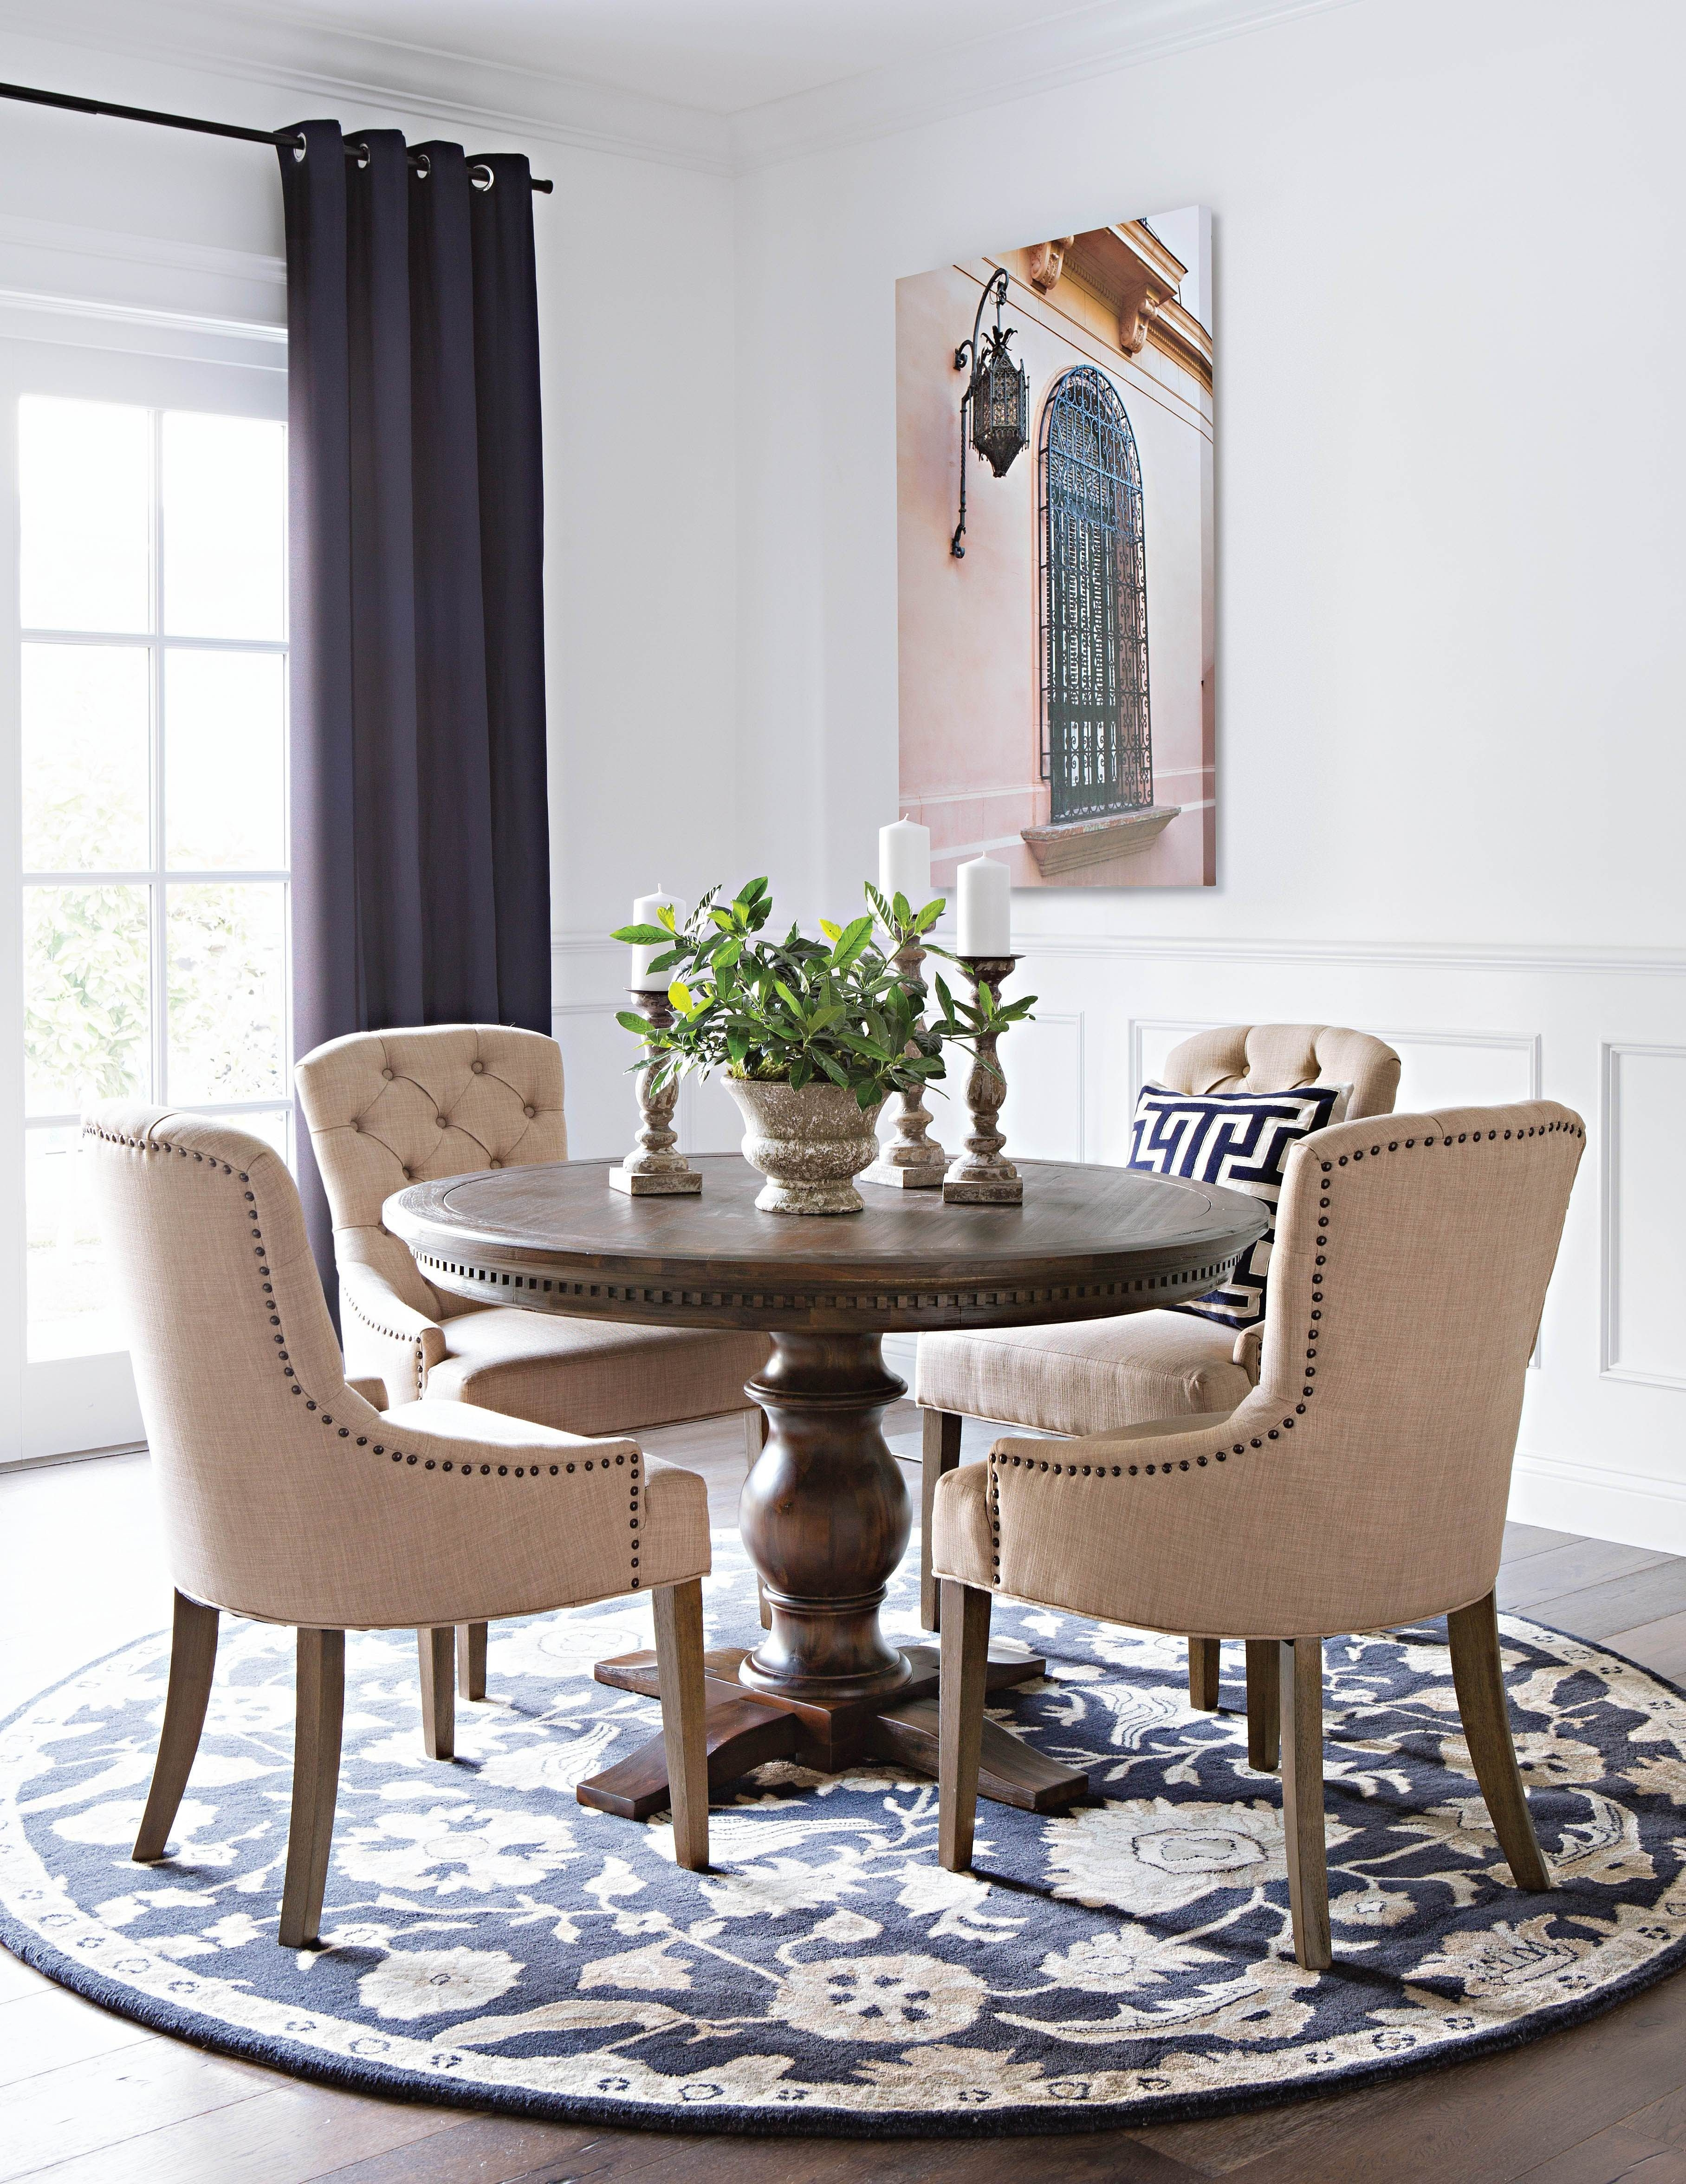 Jefferson 5 Piece Extension Round Dining Set, Brown | Pinterest With Regard To Most Up To Date Jefferson Extension Round Dining Tables (Image 9 of 20)